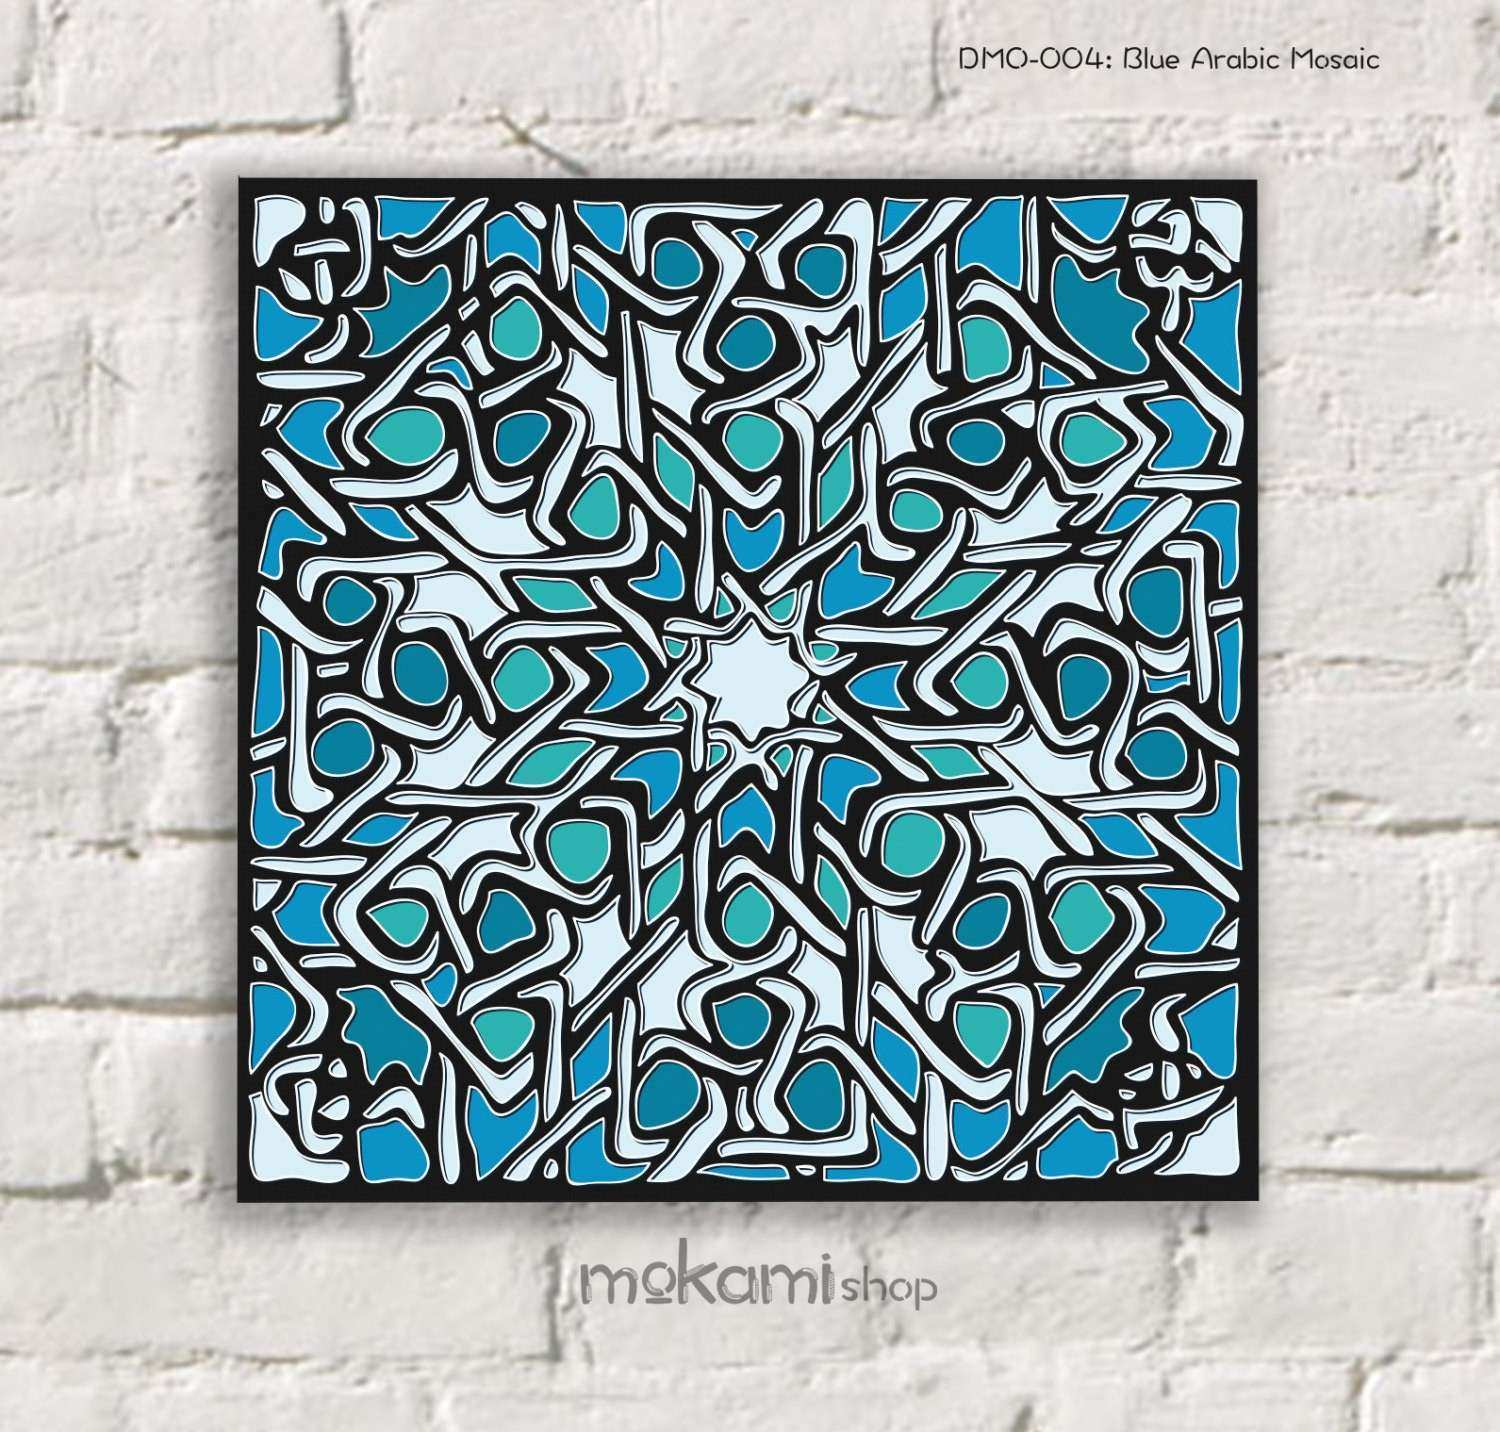 Moroccan Wall Decor Luxury Moroccan Canvas Print Arabic Mosaic Moroccan  Wall Decor By